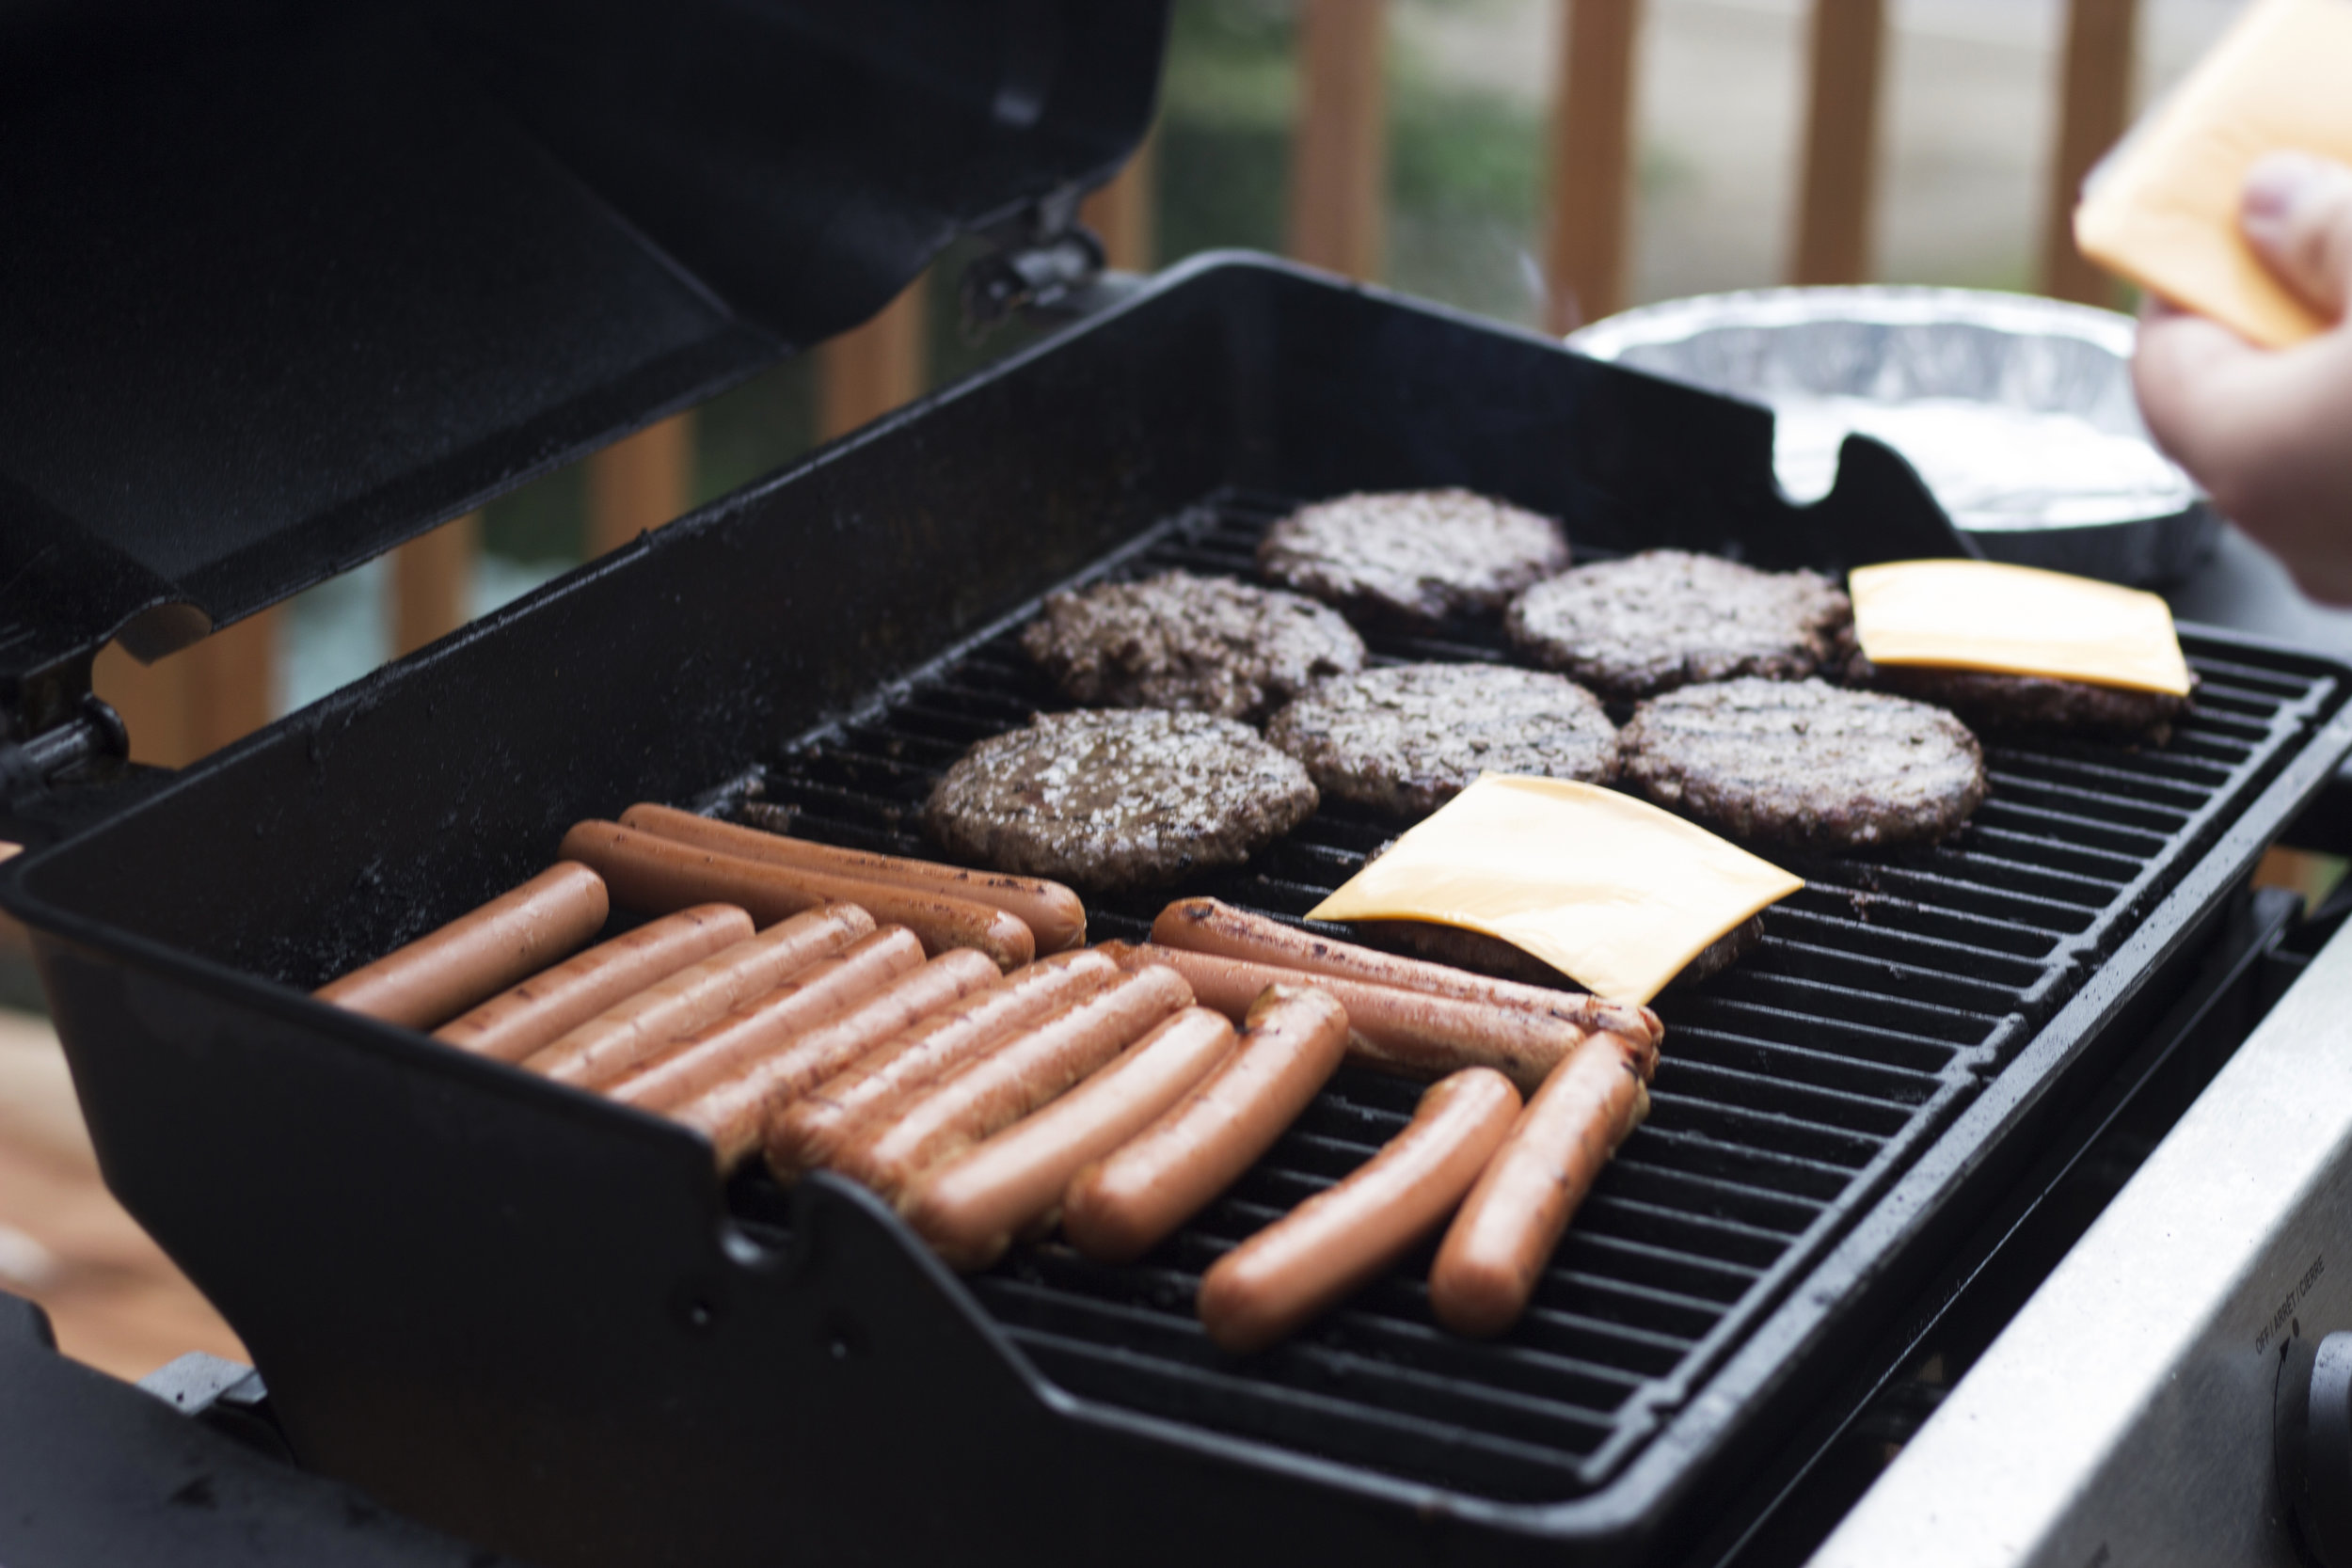 Burgers and dogs on the grill can be a great way to bring people together. Photo from Unsplash.